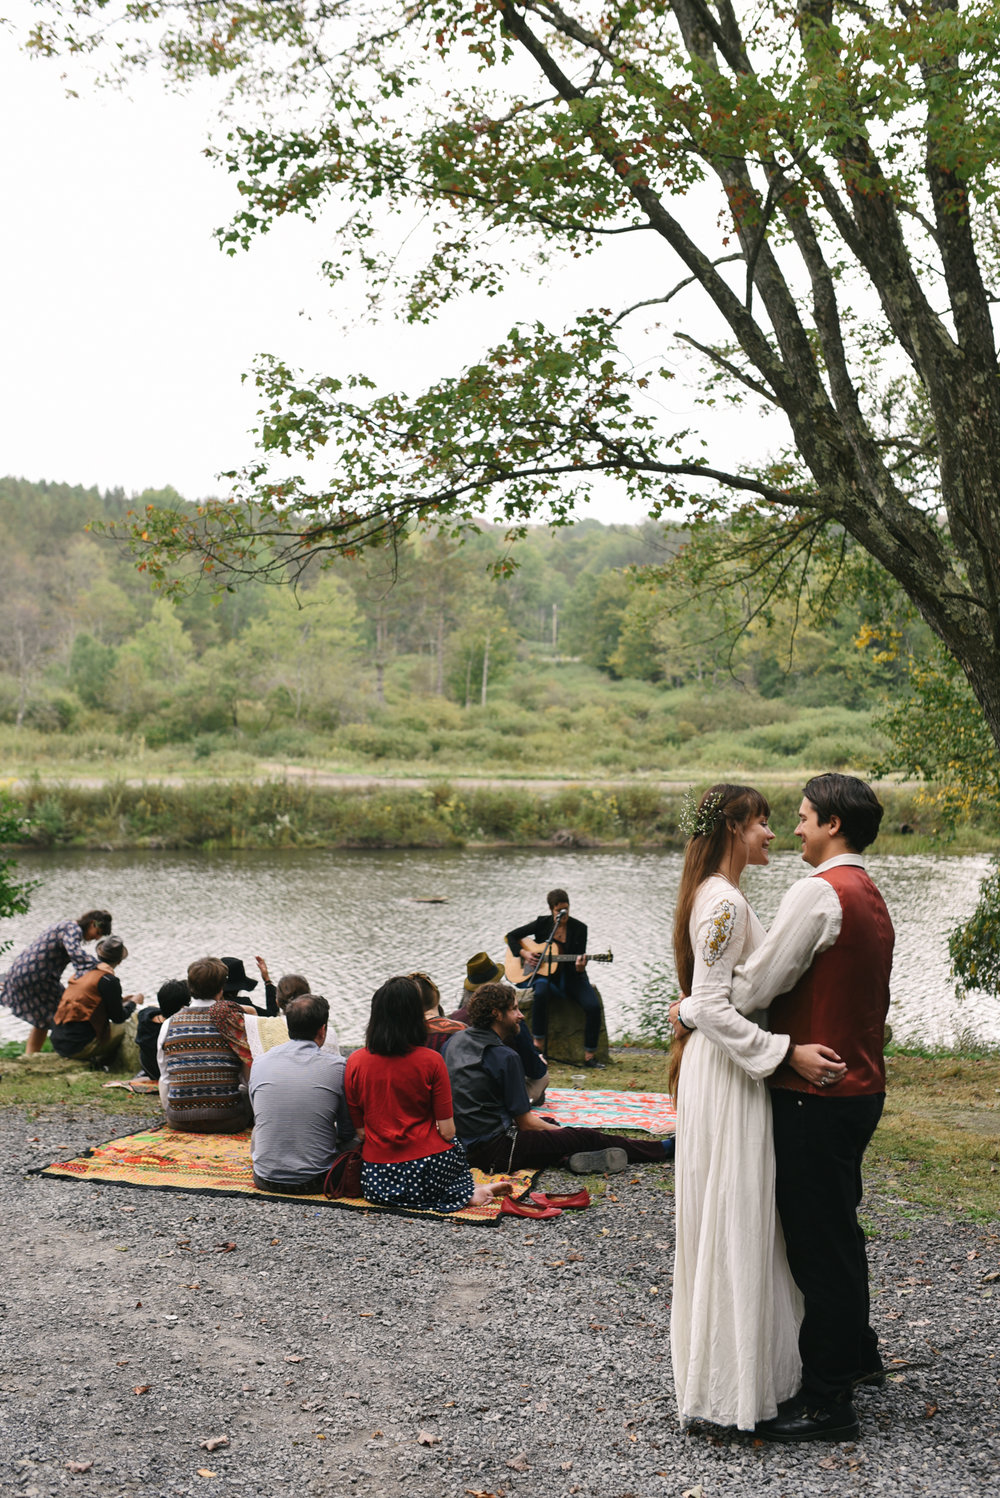 Mountain Wedding, Outdoors, Rustic, West Virginia, Maryland Wedding Photographer, DIY, Casual, bride and groom hugging and laughing with friend plays guitar